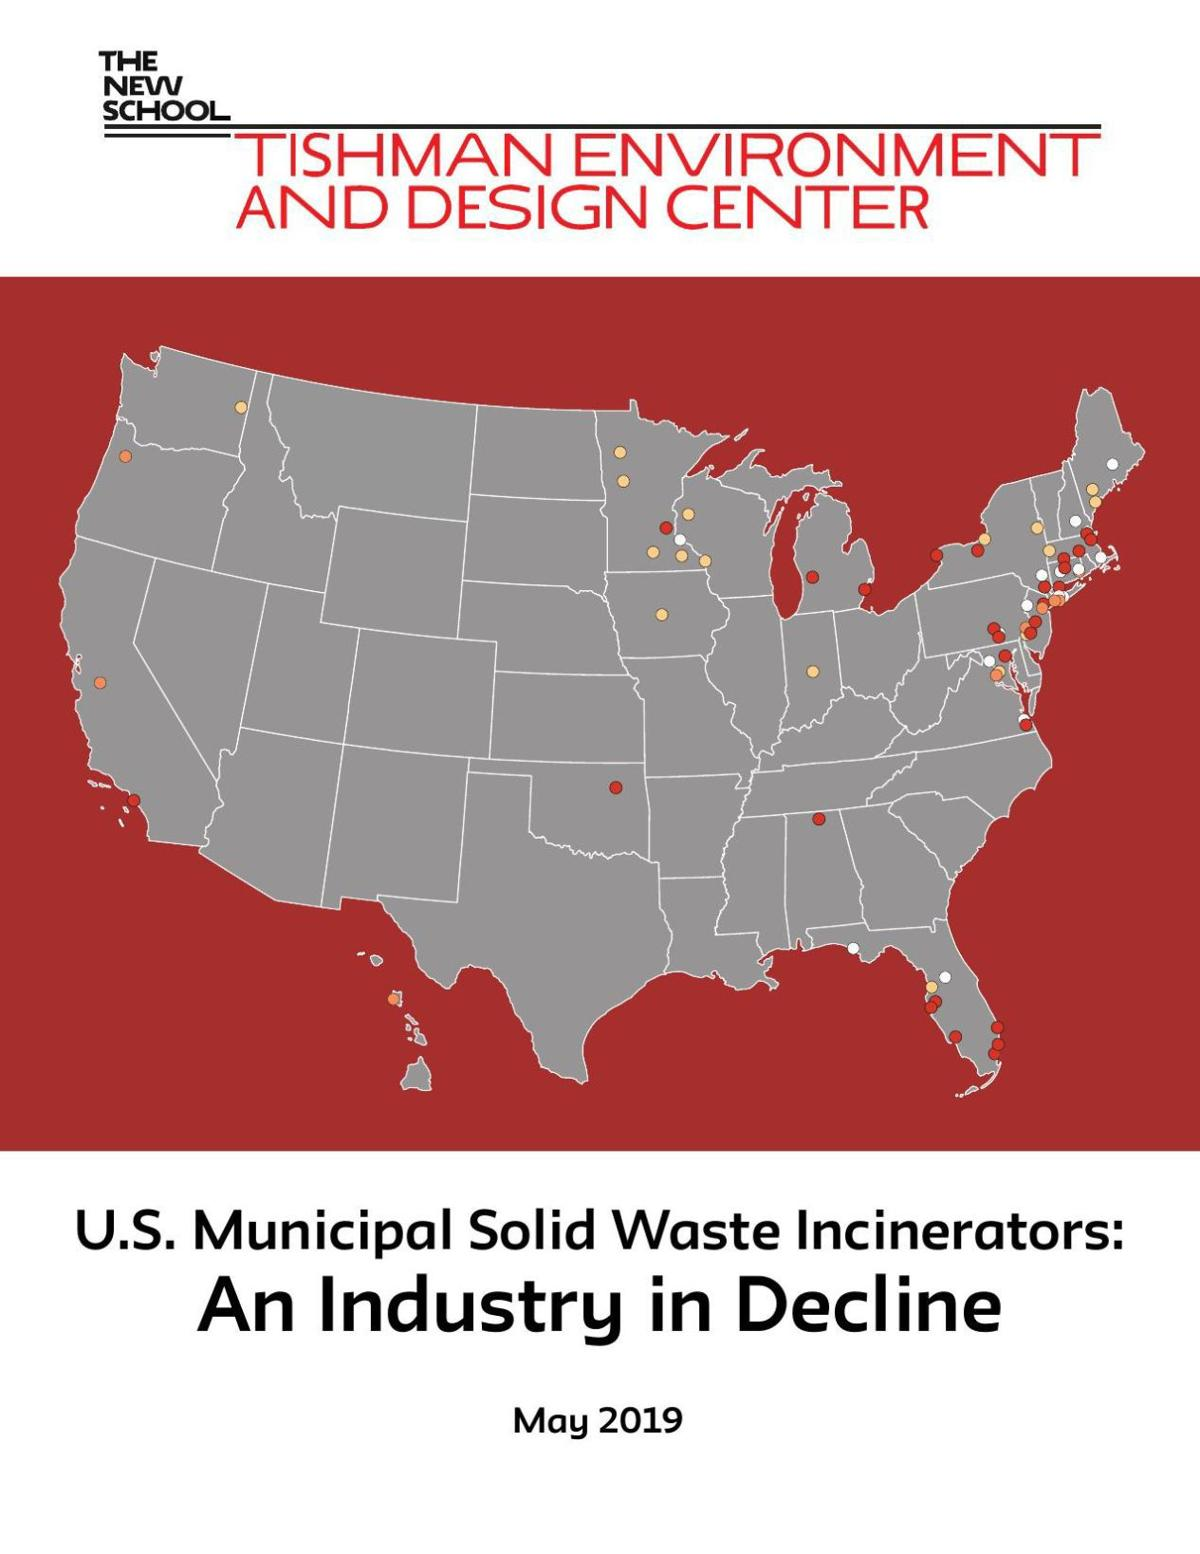 Report: U.S. Municipal Solid Waste Incinerators: An Industry in Decline